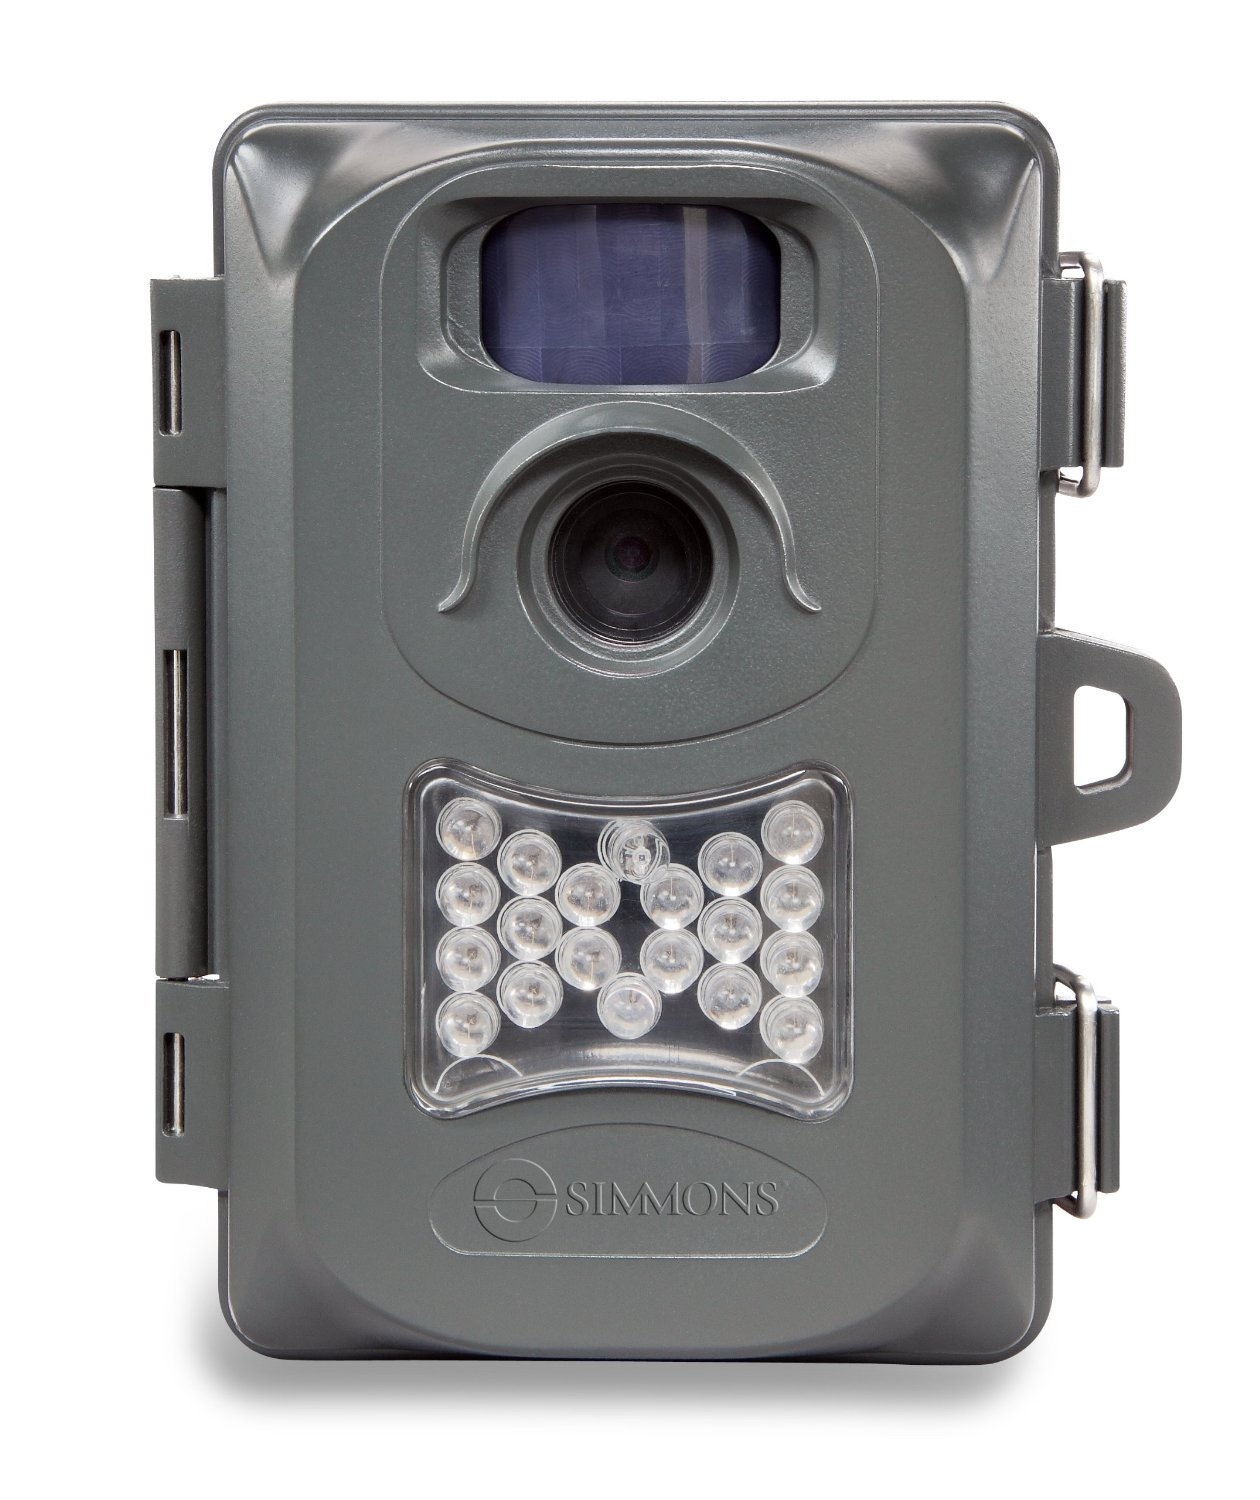 Simmons Night Vision Video Security